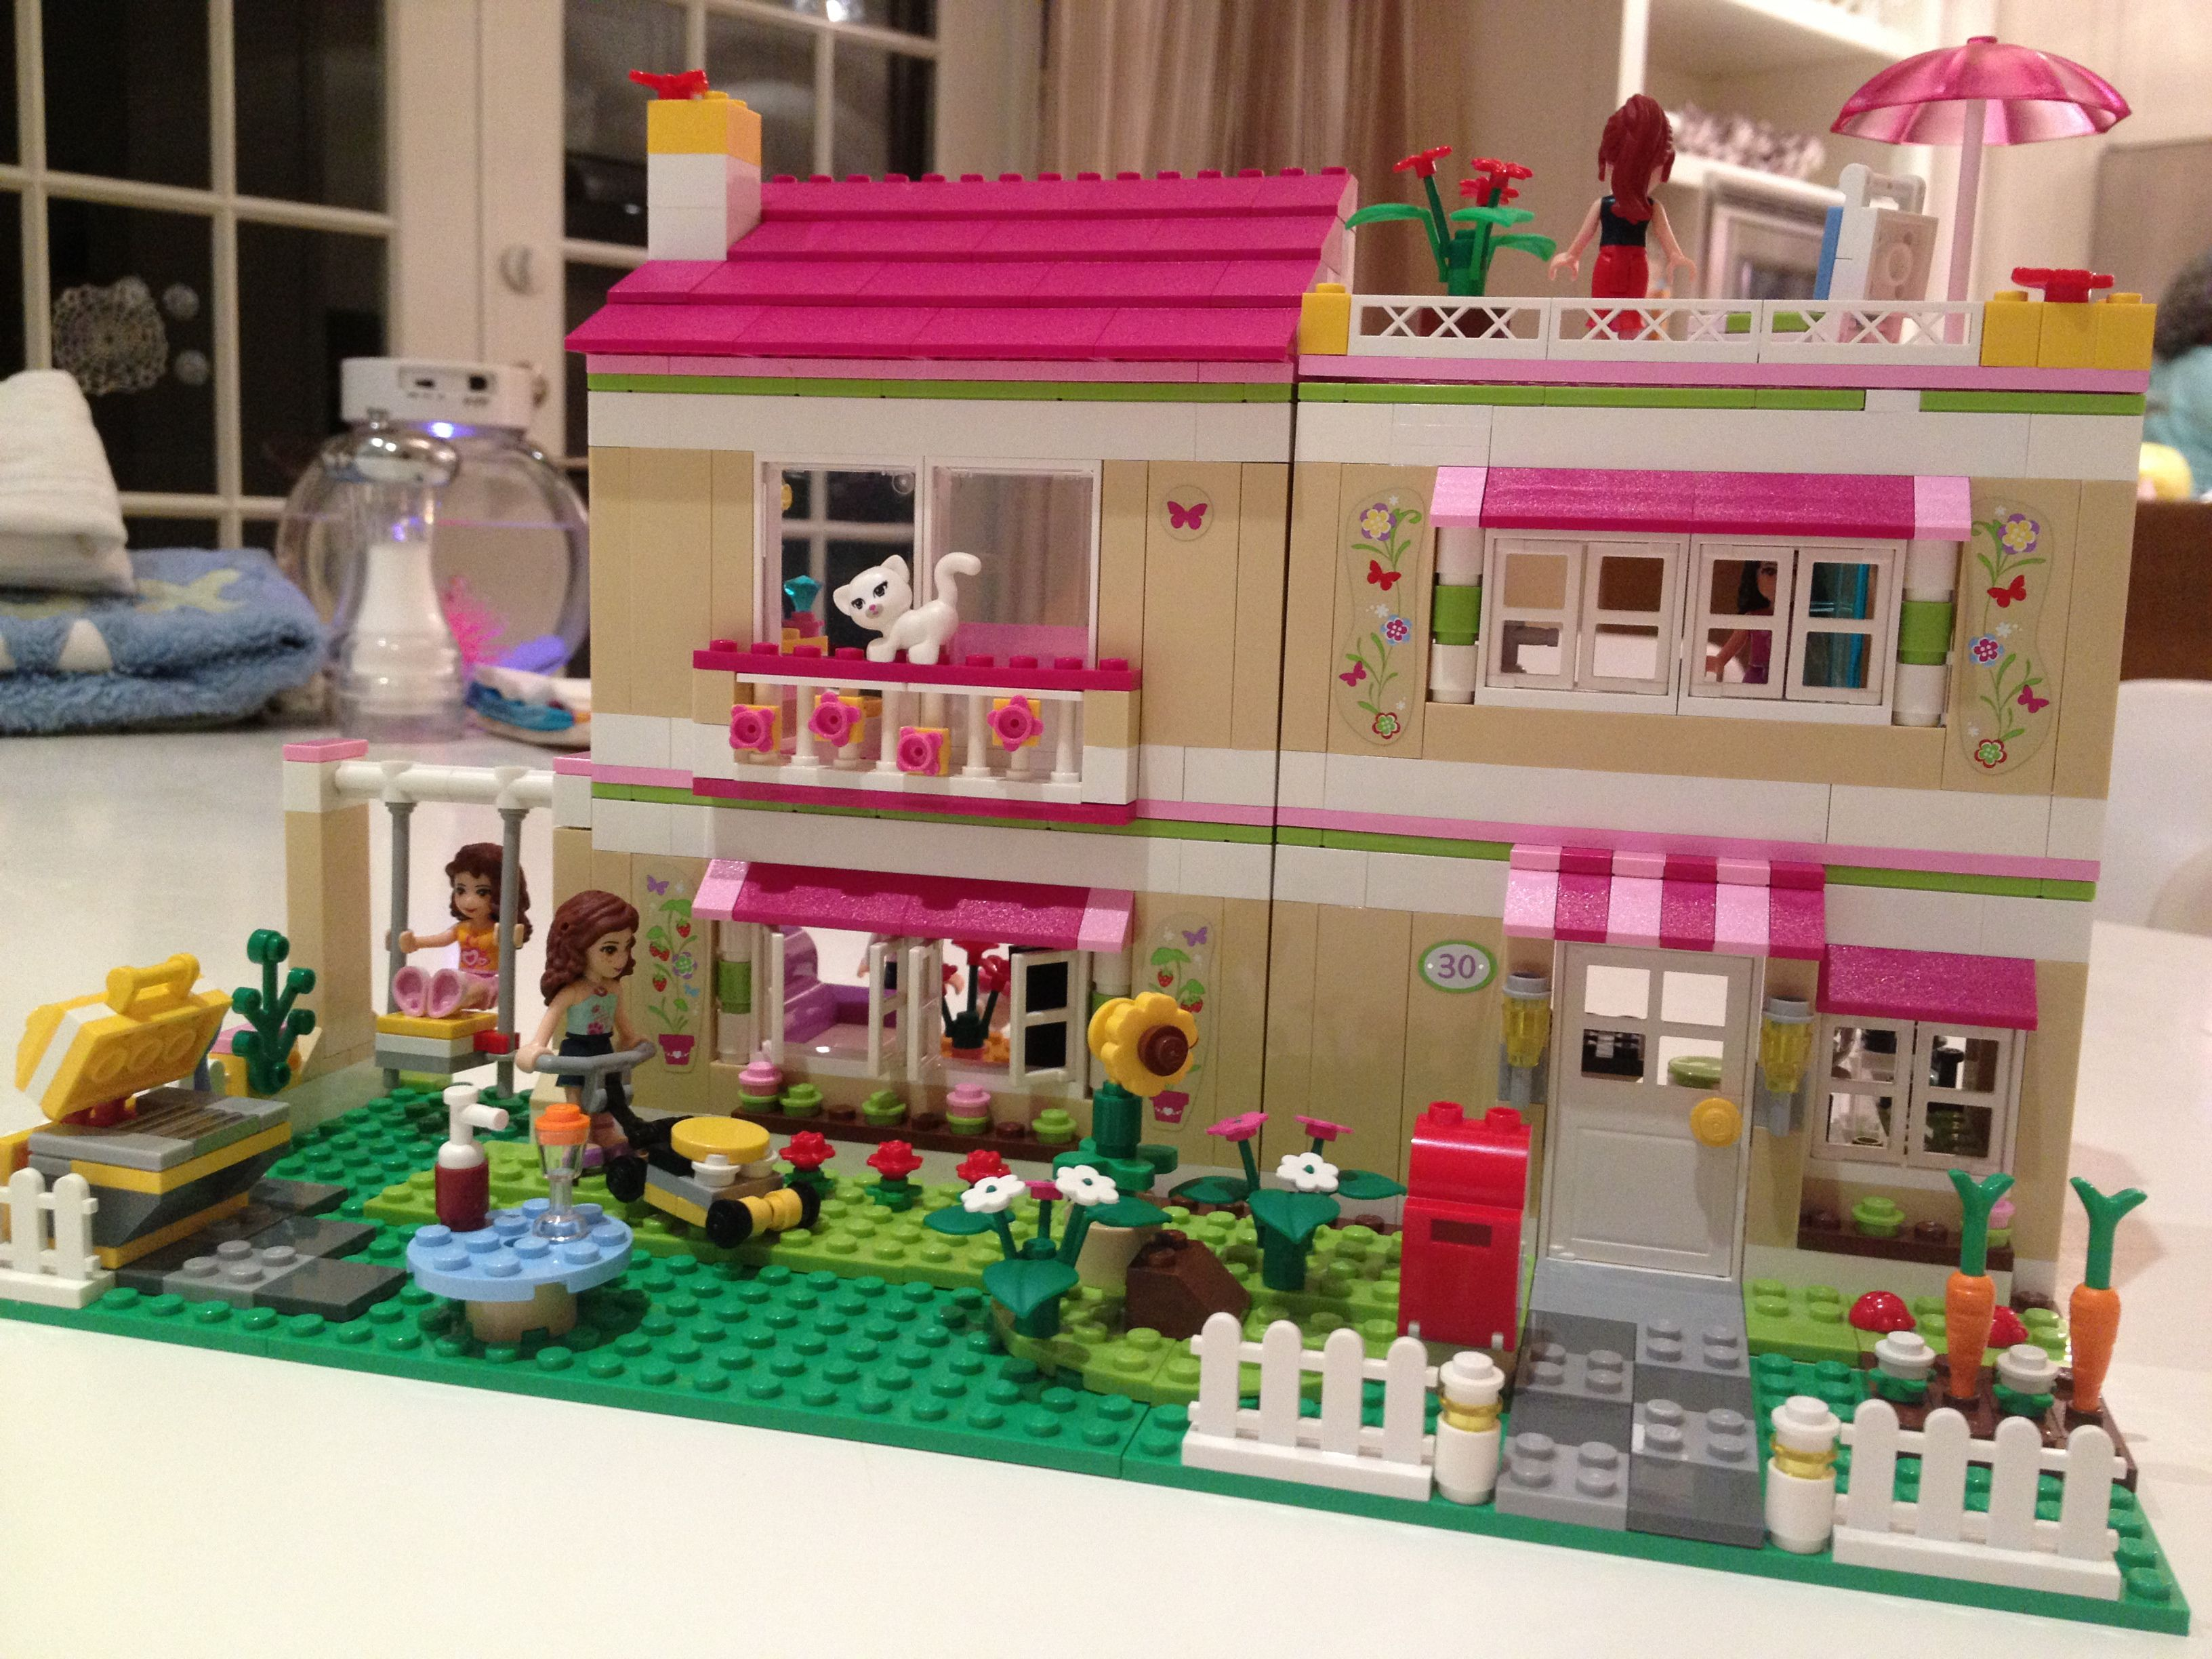 Girls Lego dream house Took 3 days to finish